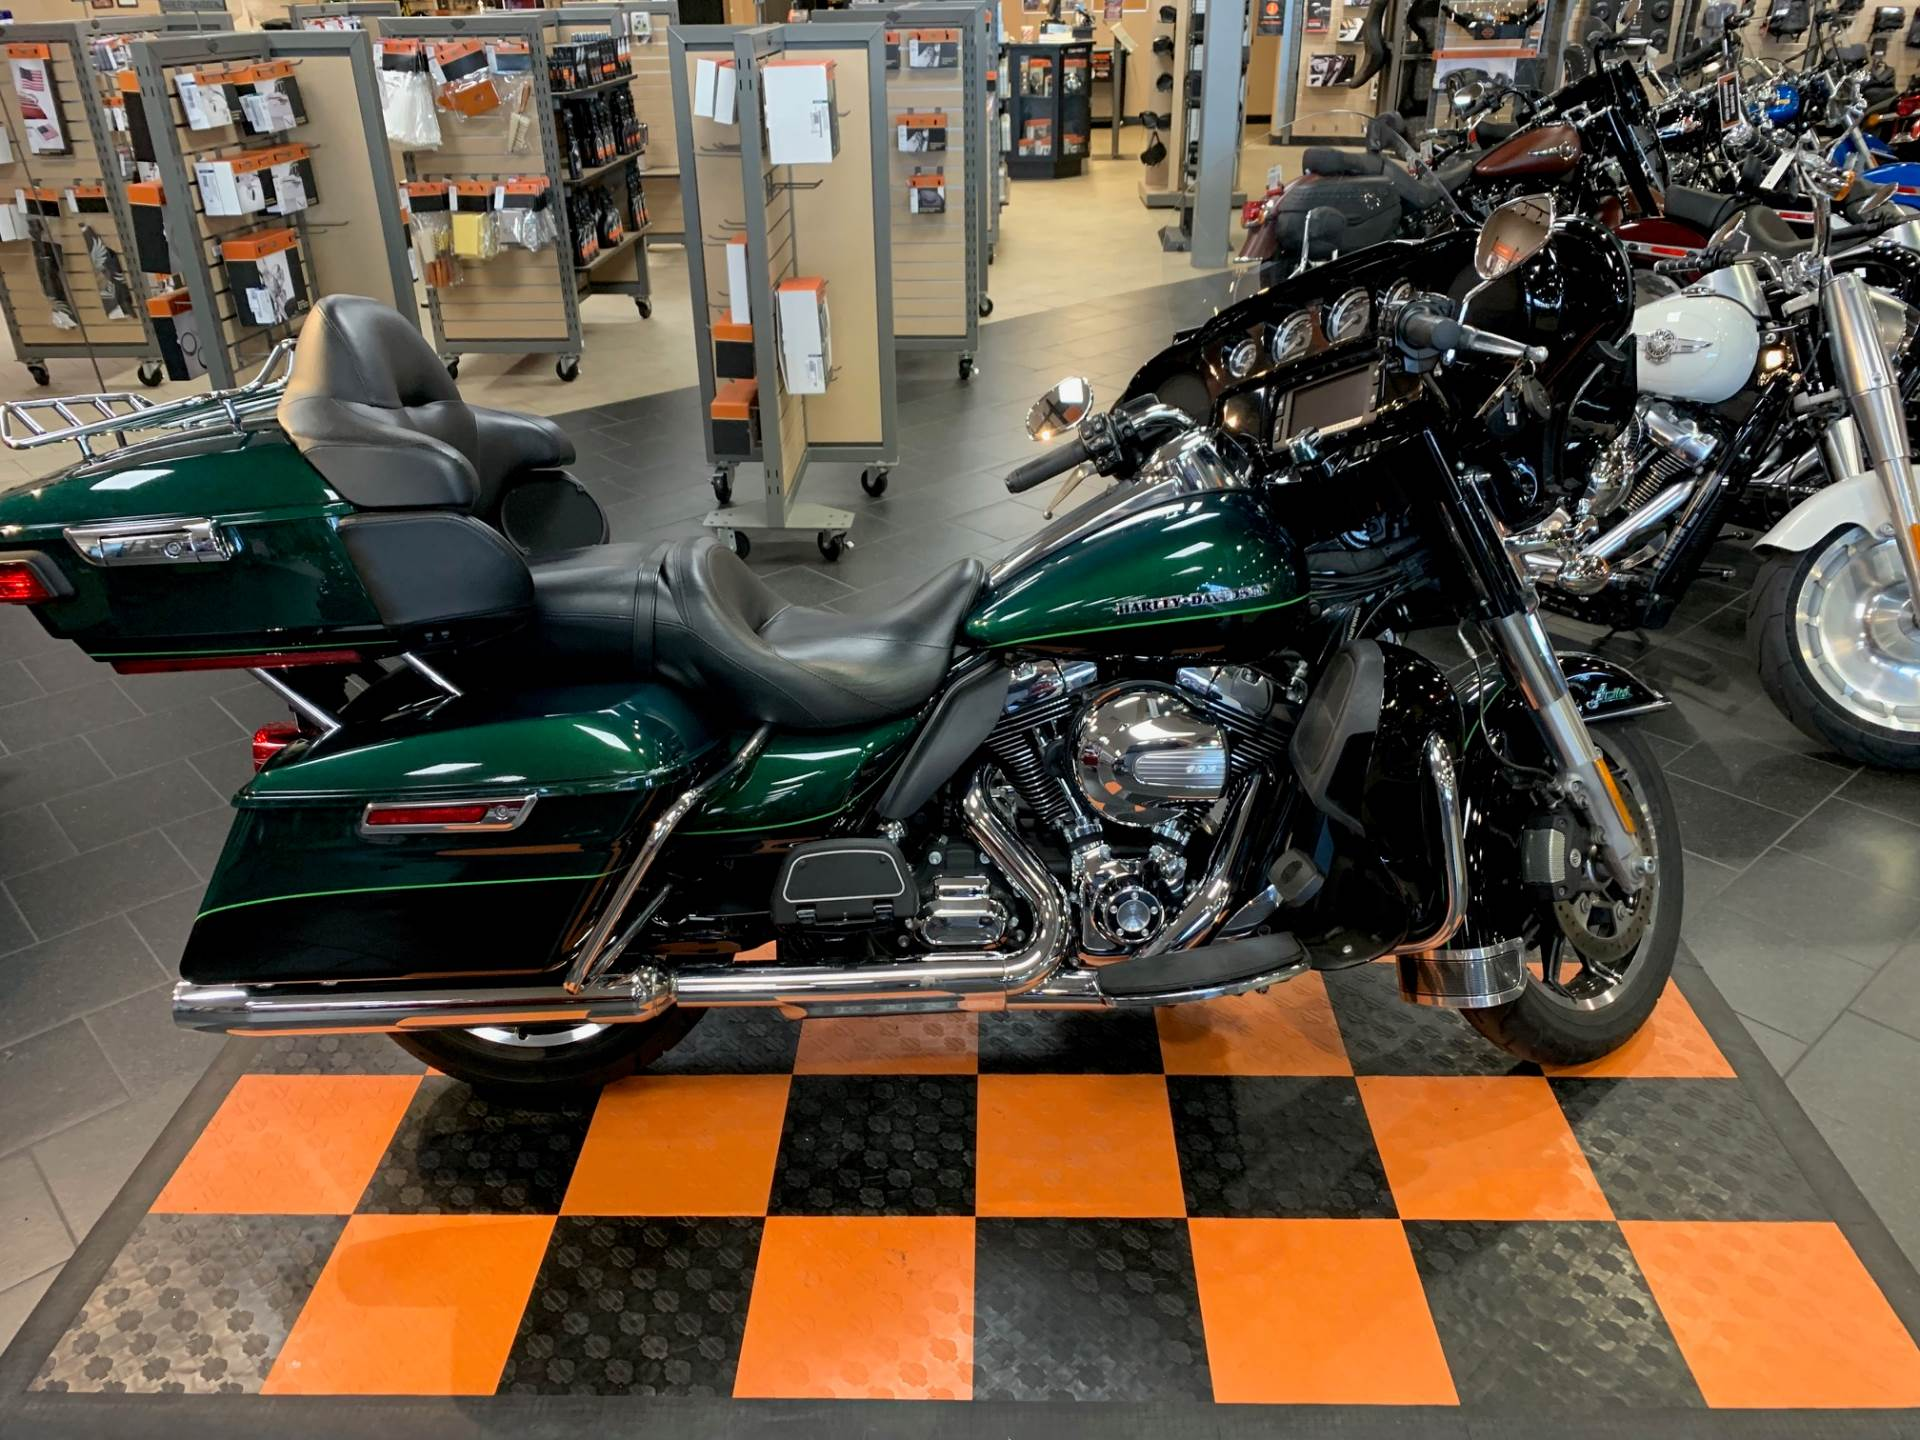 2015 Harley-Davidson Ultra Limited in The Woodlands, Texas - Photo 1